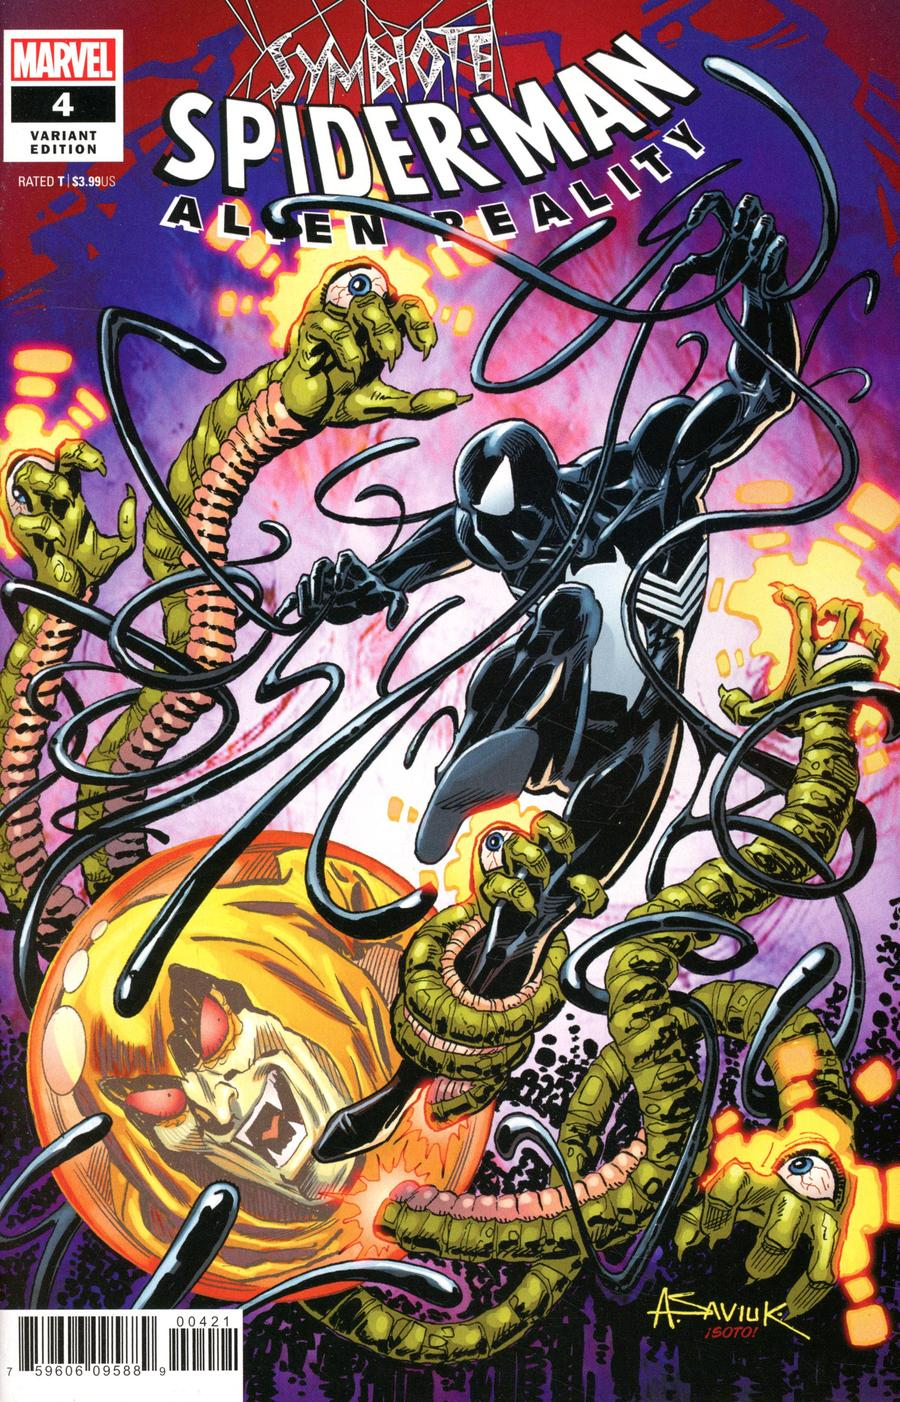 Symbiote Spider-Man Alien Reality #4 Cover D Incentive Alex Saviuk Variant Cover